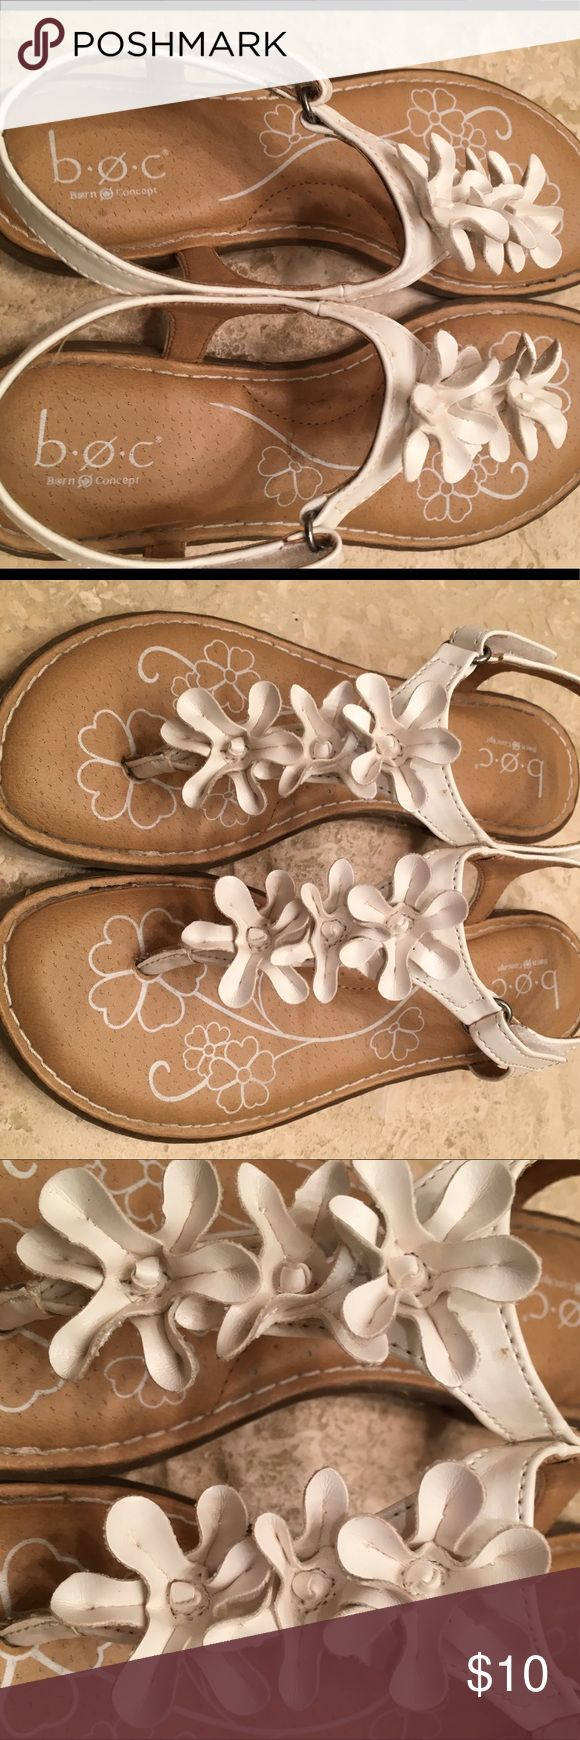 Born B.O.C. Very cute Flower Sandals! Super cute! Excellent condition! Born Shoes Sandals & Flip Flops